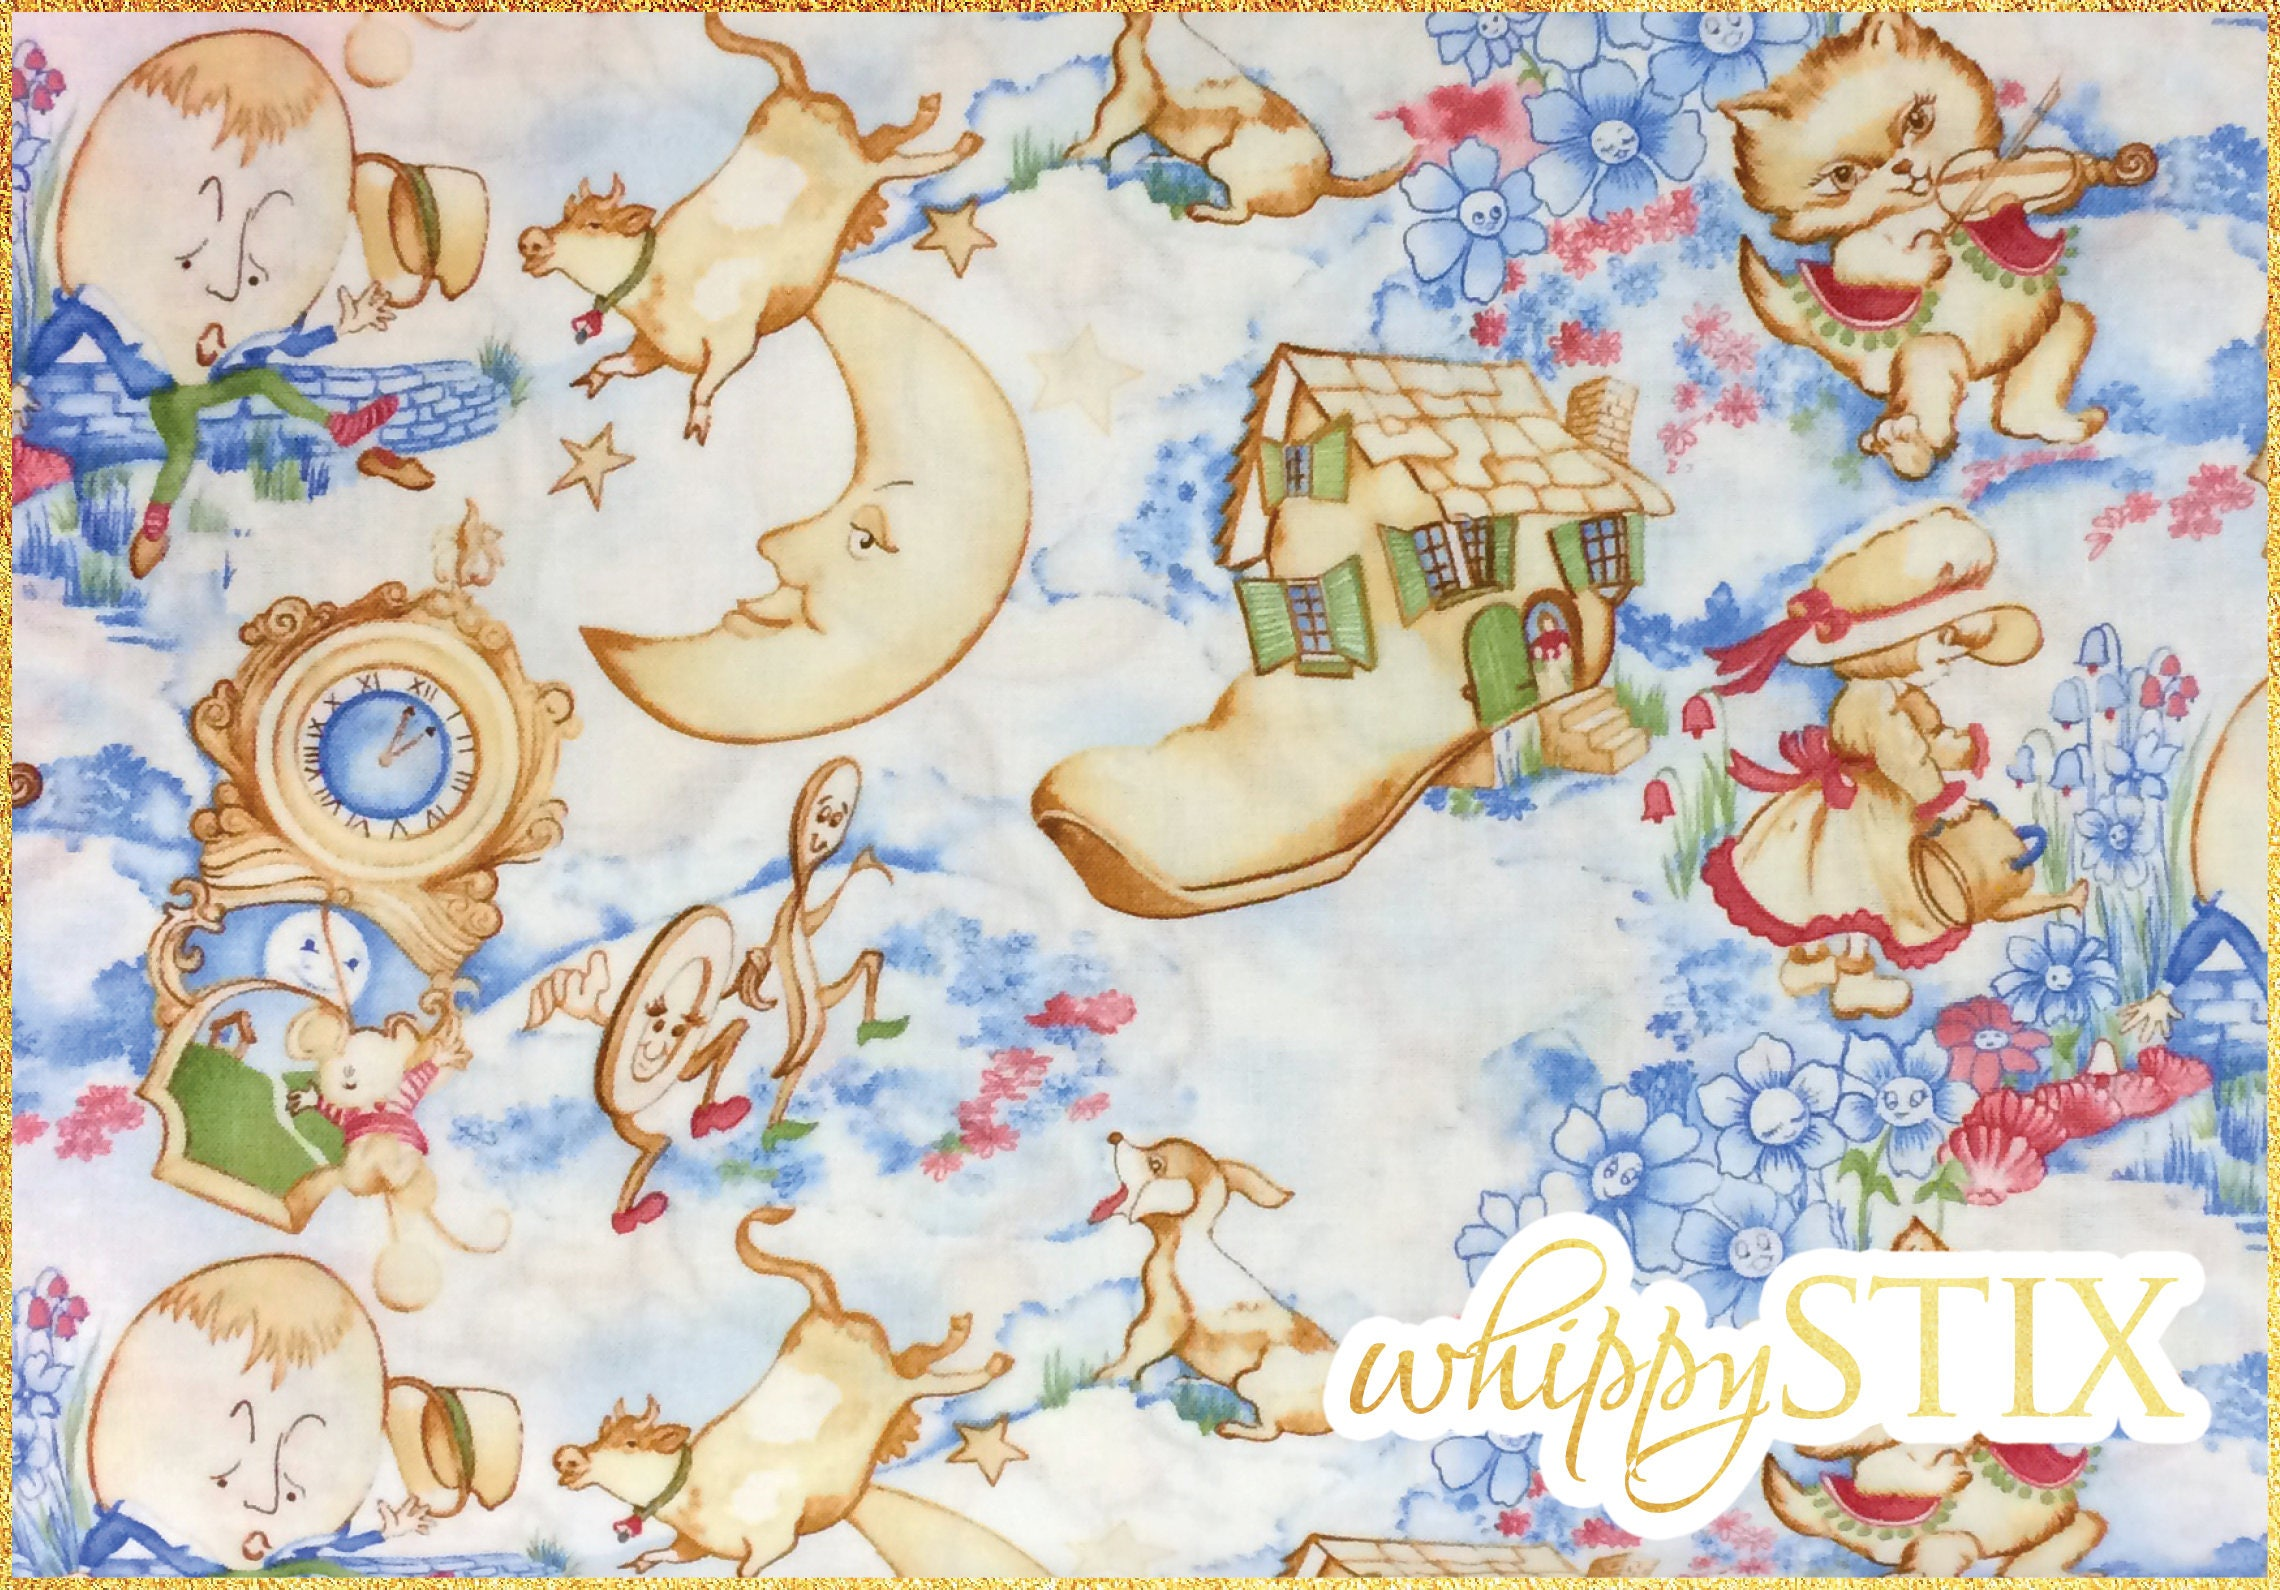 Nursery Rhymes Fabric By The Yard Westrade Collection K6144a